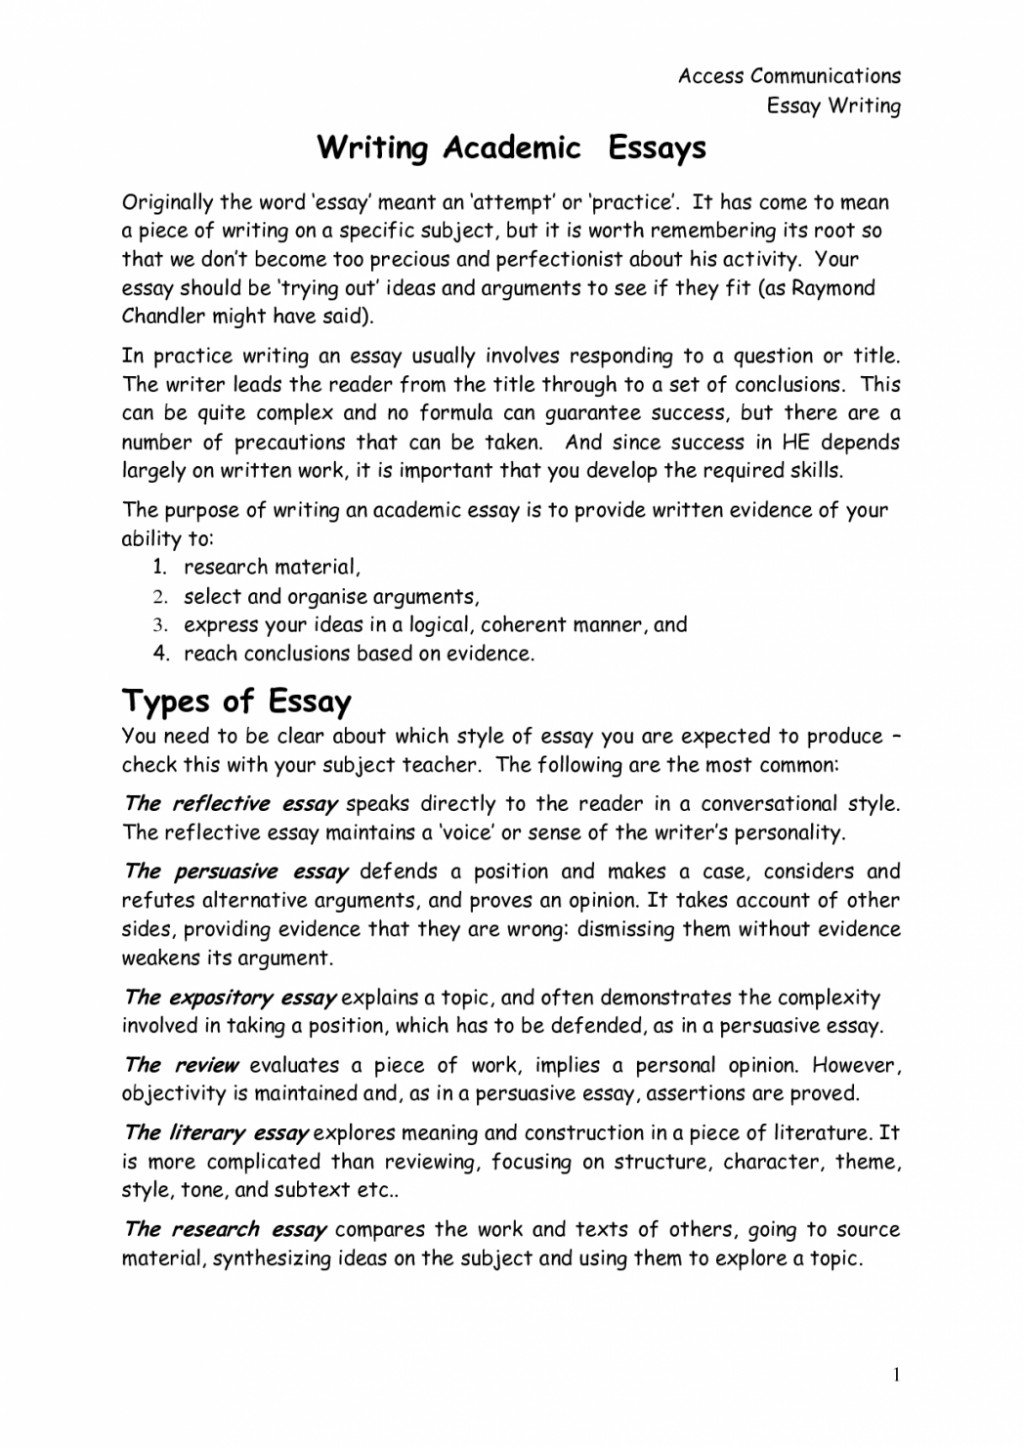 006 Academic Essay Write An Introduction Example Of Good How To Plan Youtube Sample Pdf Uk Ielts Ppt Conclusion Wondrous Definition Essays Should Always Be Organized By Titles Large